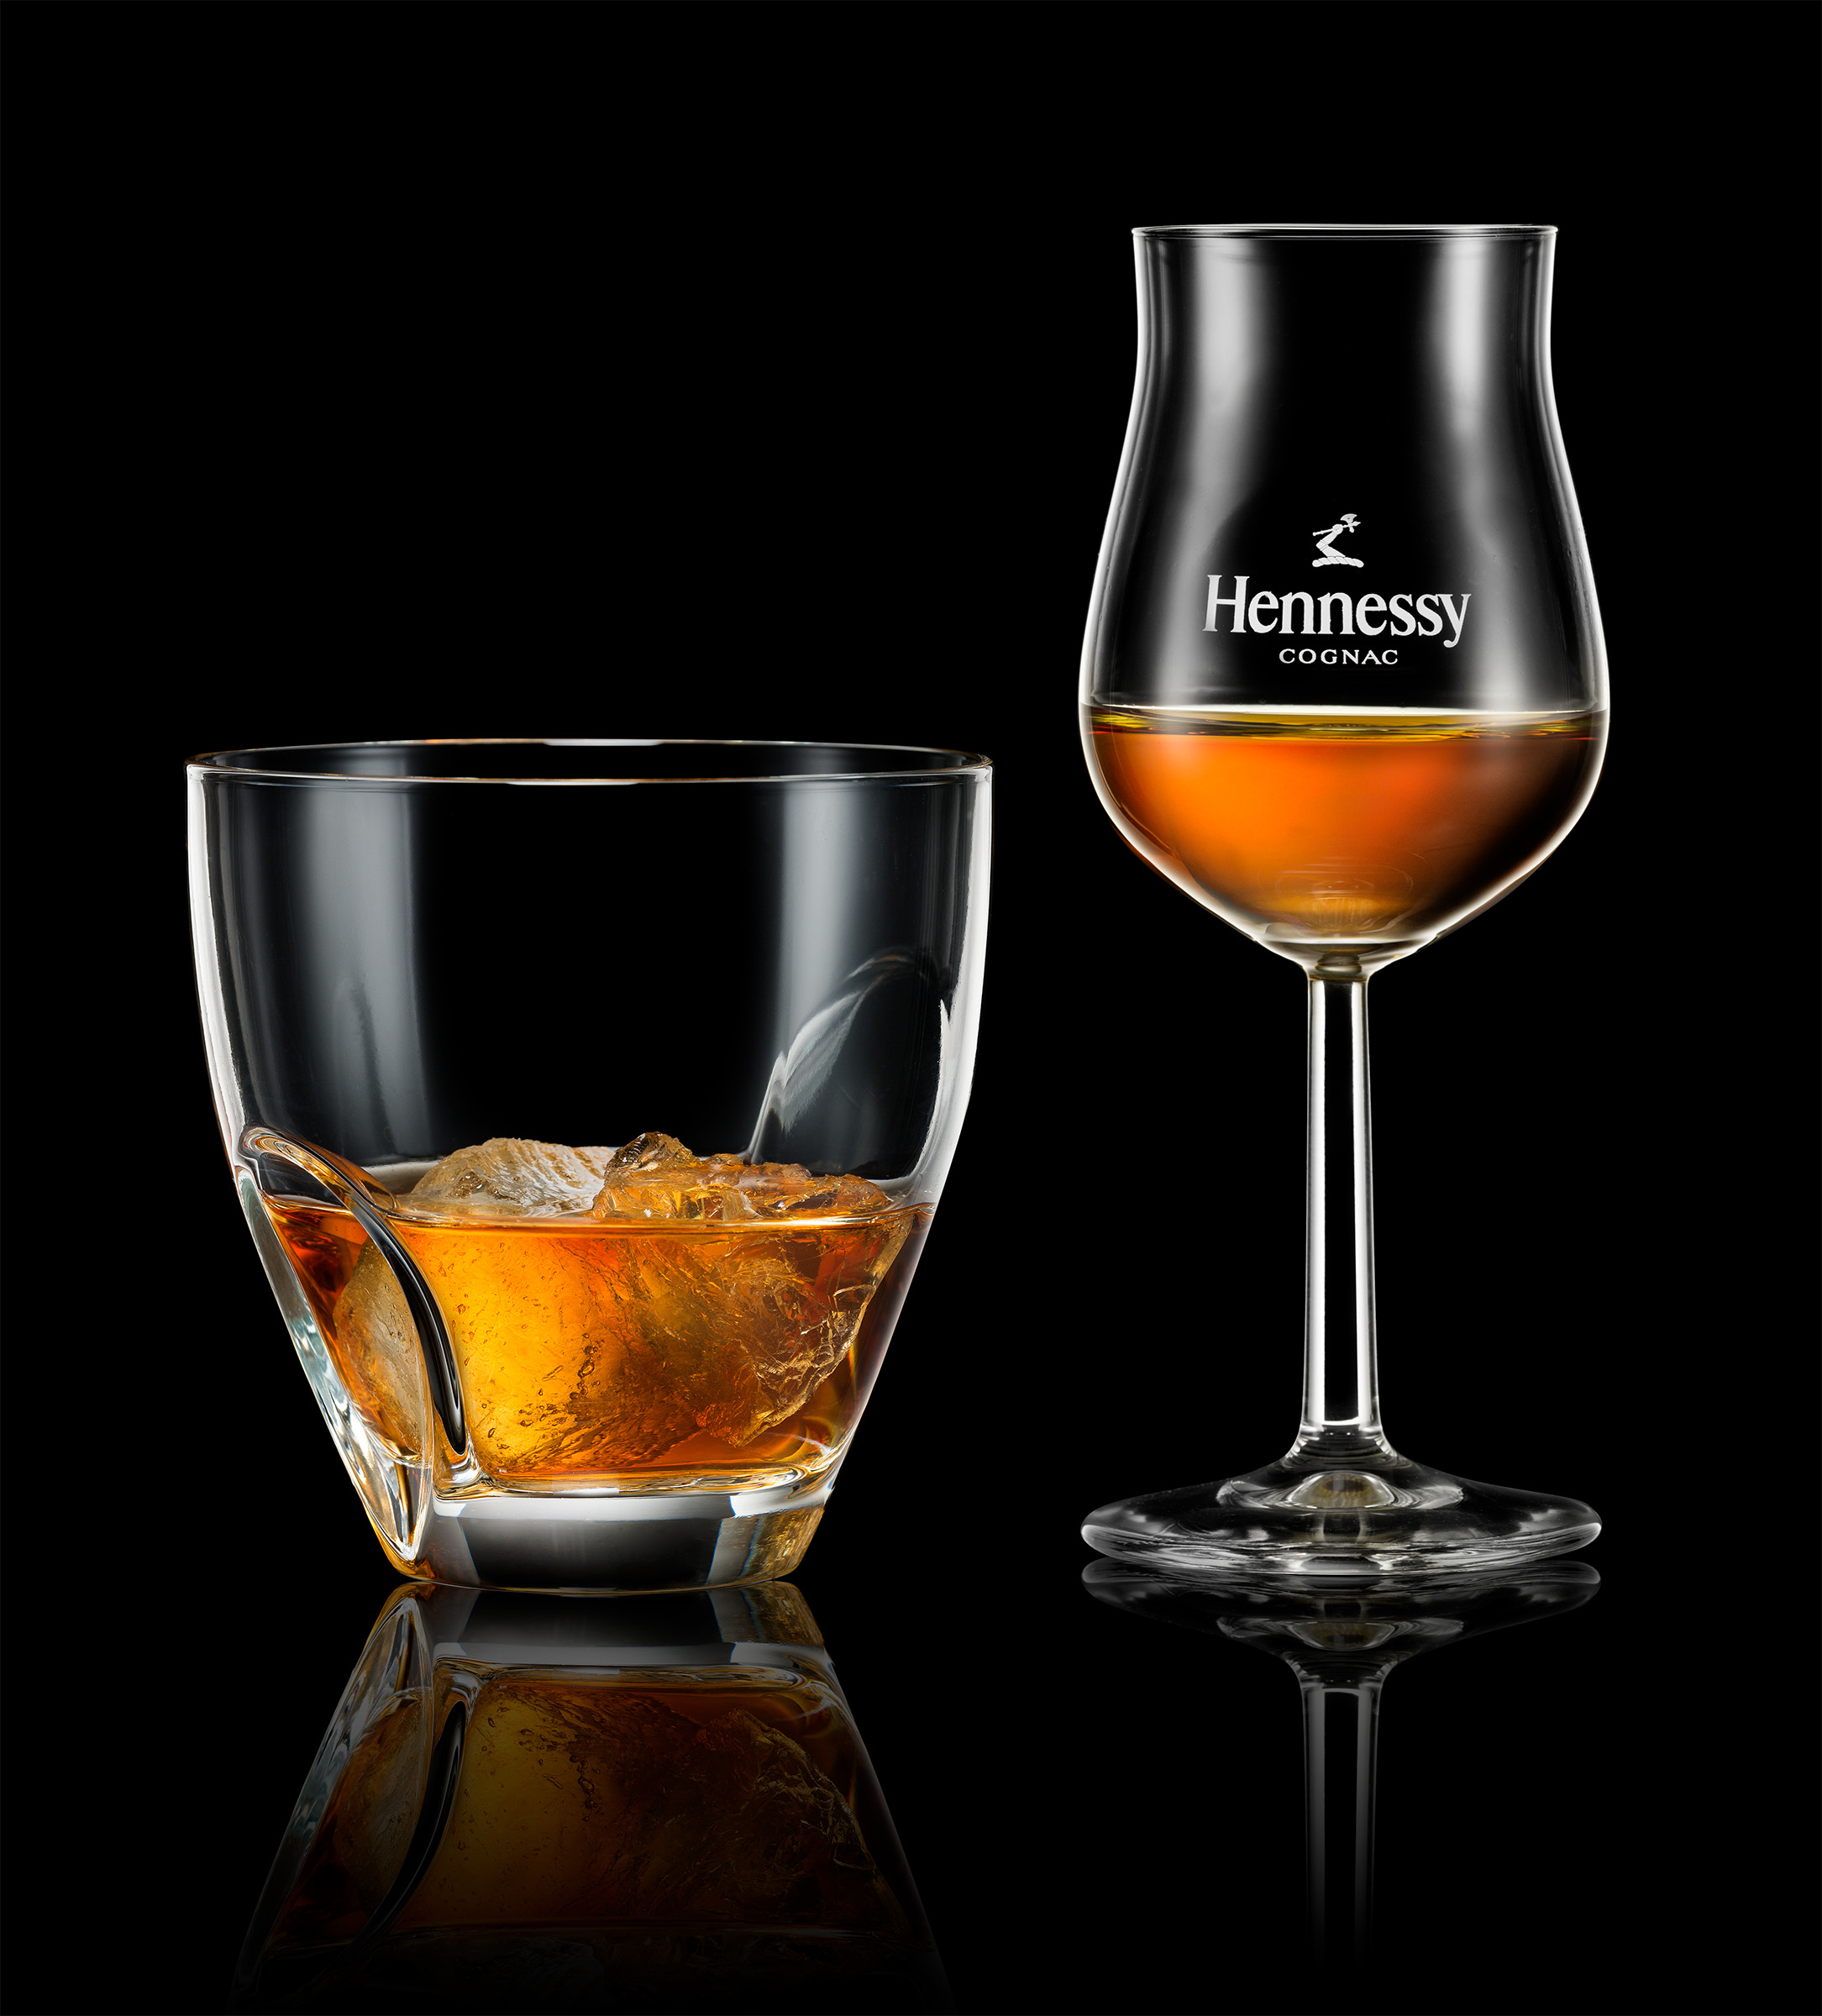 Advertising studio alcohol photography of Hennessy cognac liquor in glass with ice